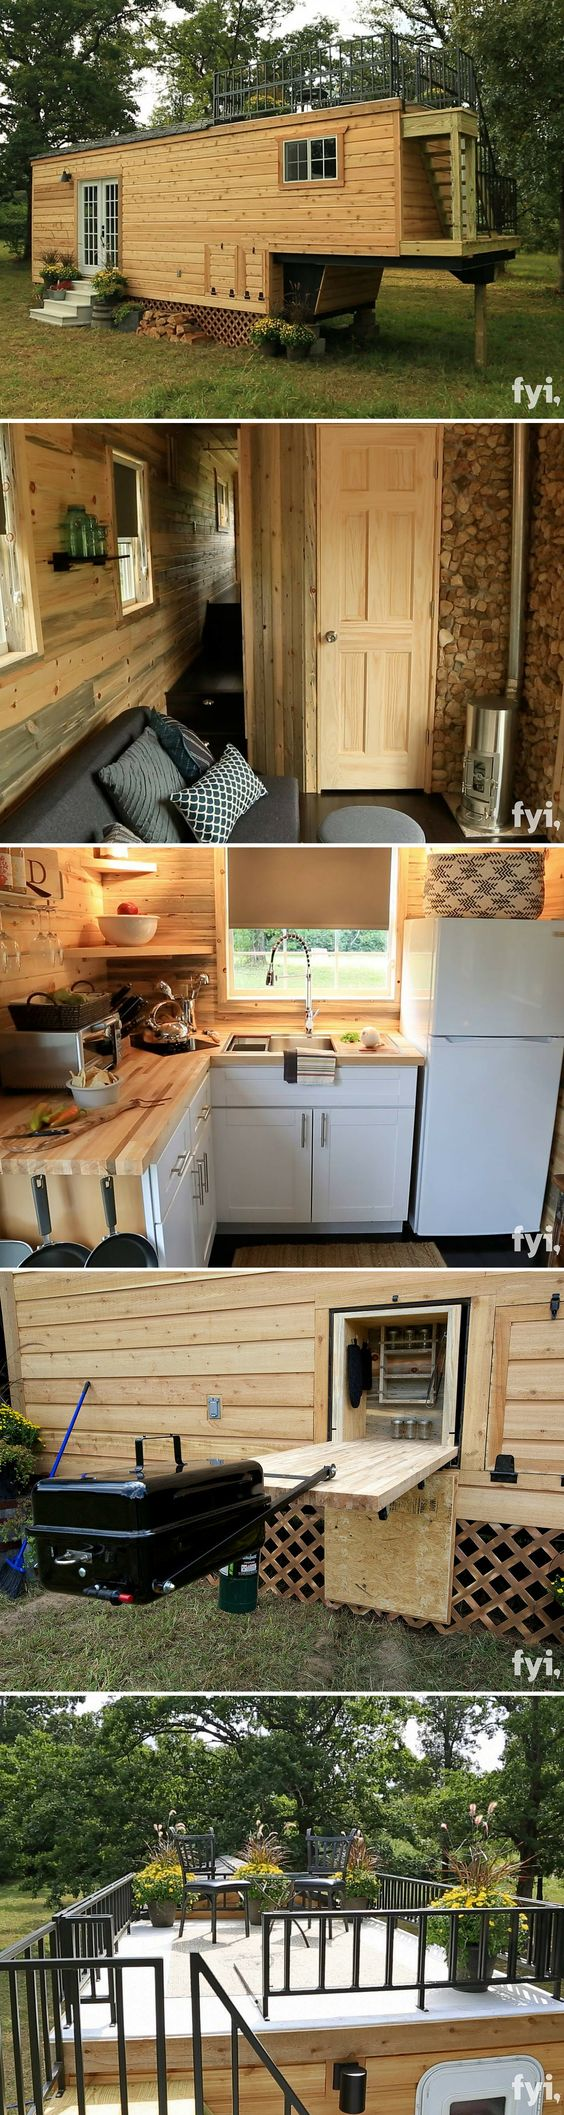 the honeymoon suite tiny house cabin style tiny homes pinterest the roof house deck and decks. Black Bedroom Furniture Sets. Home Design Ideas